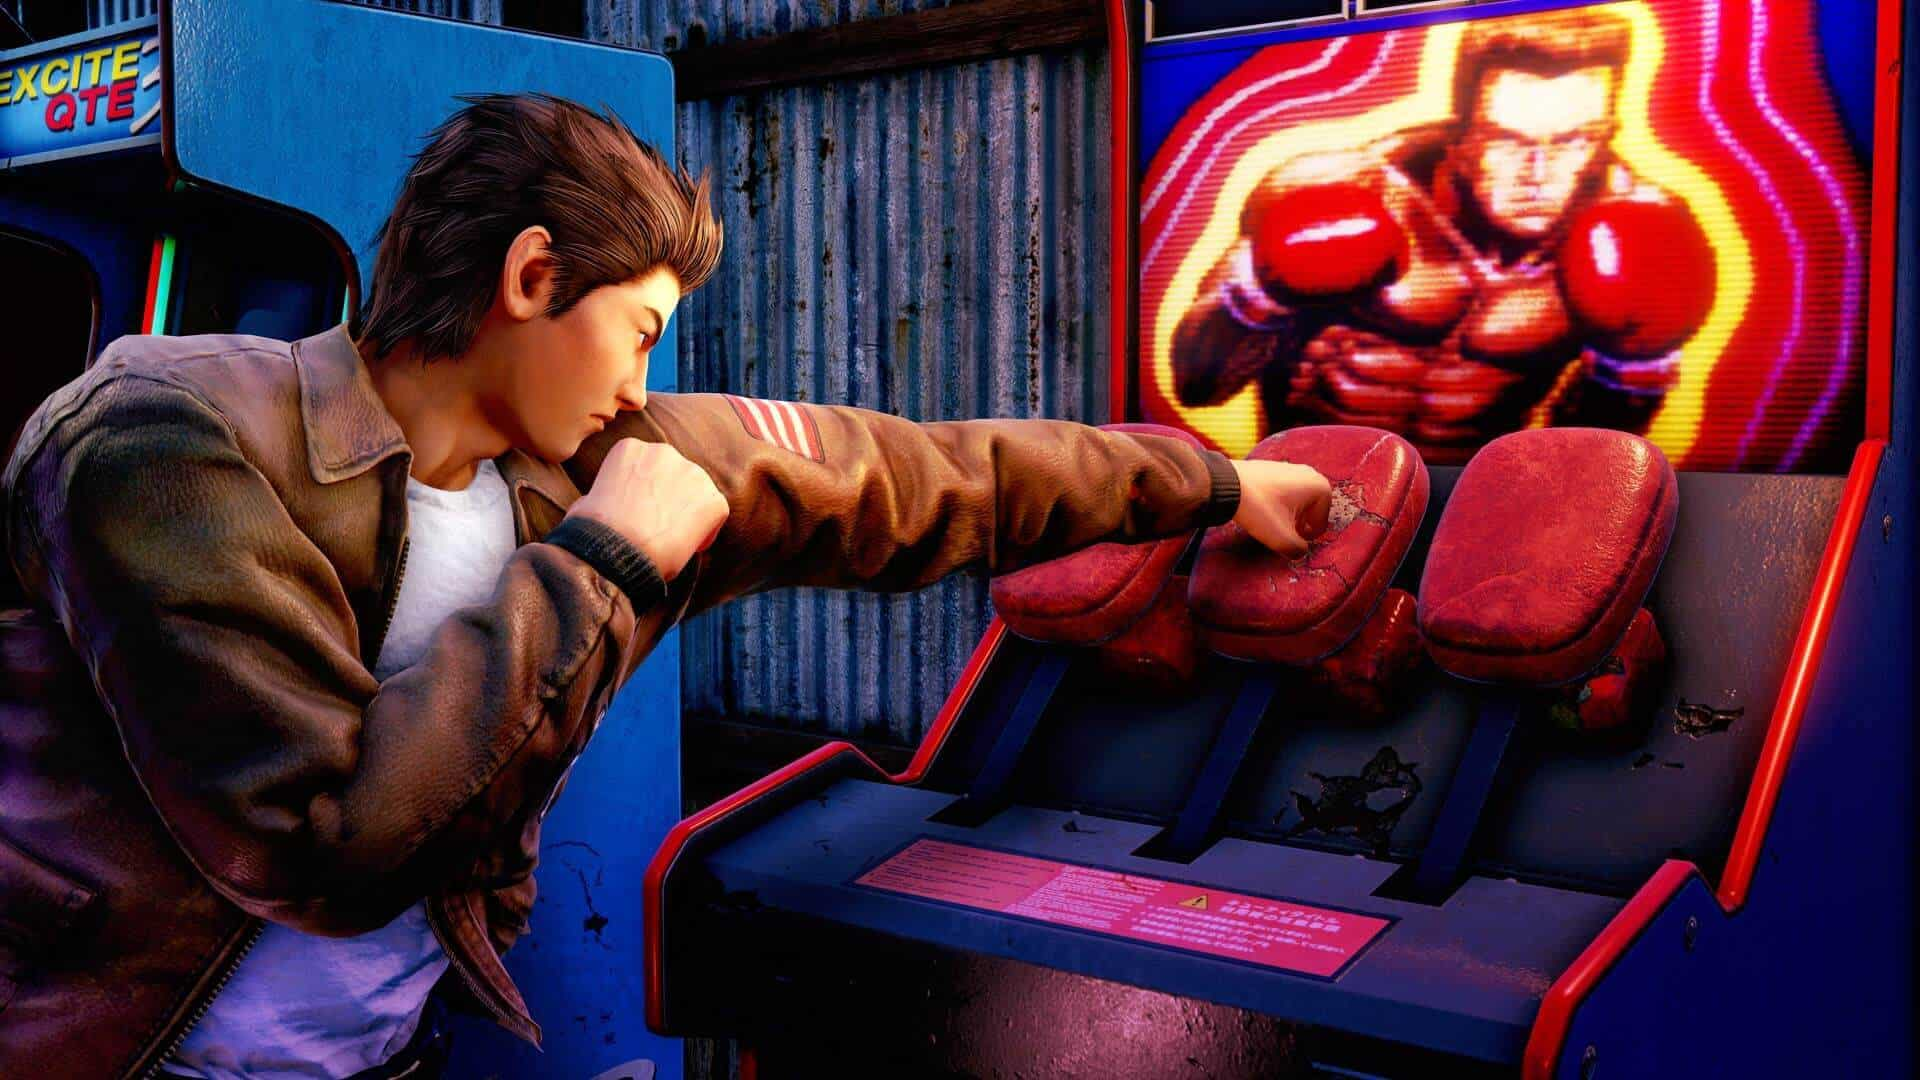 Shenmue III Fanbase upset over Epic Game Store Exclusivity